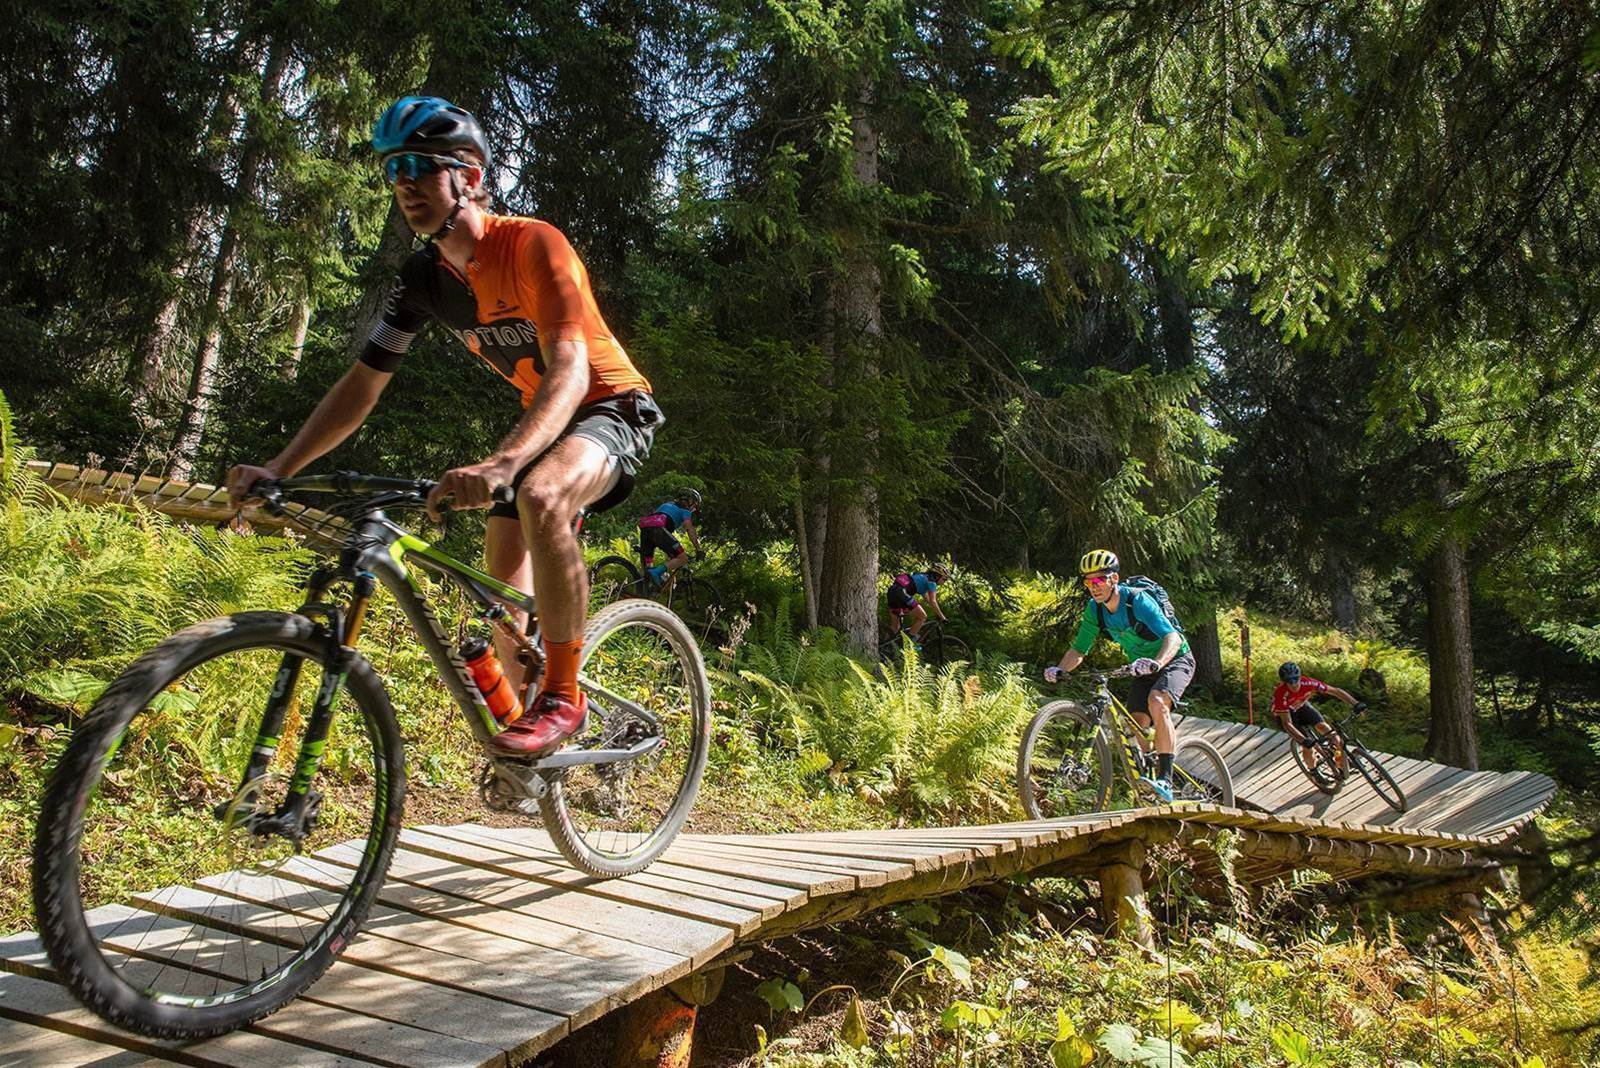 Mountain biking Lenzerheide, Switzerland